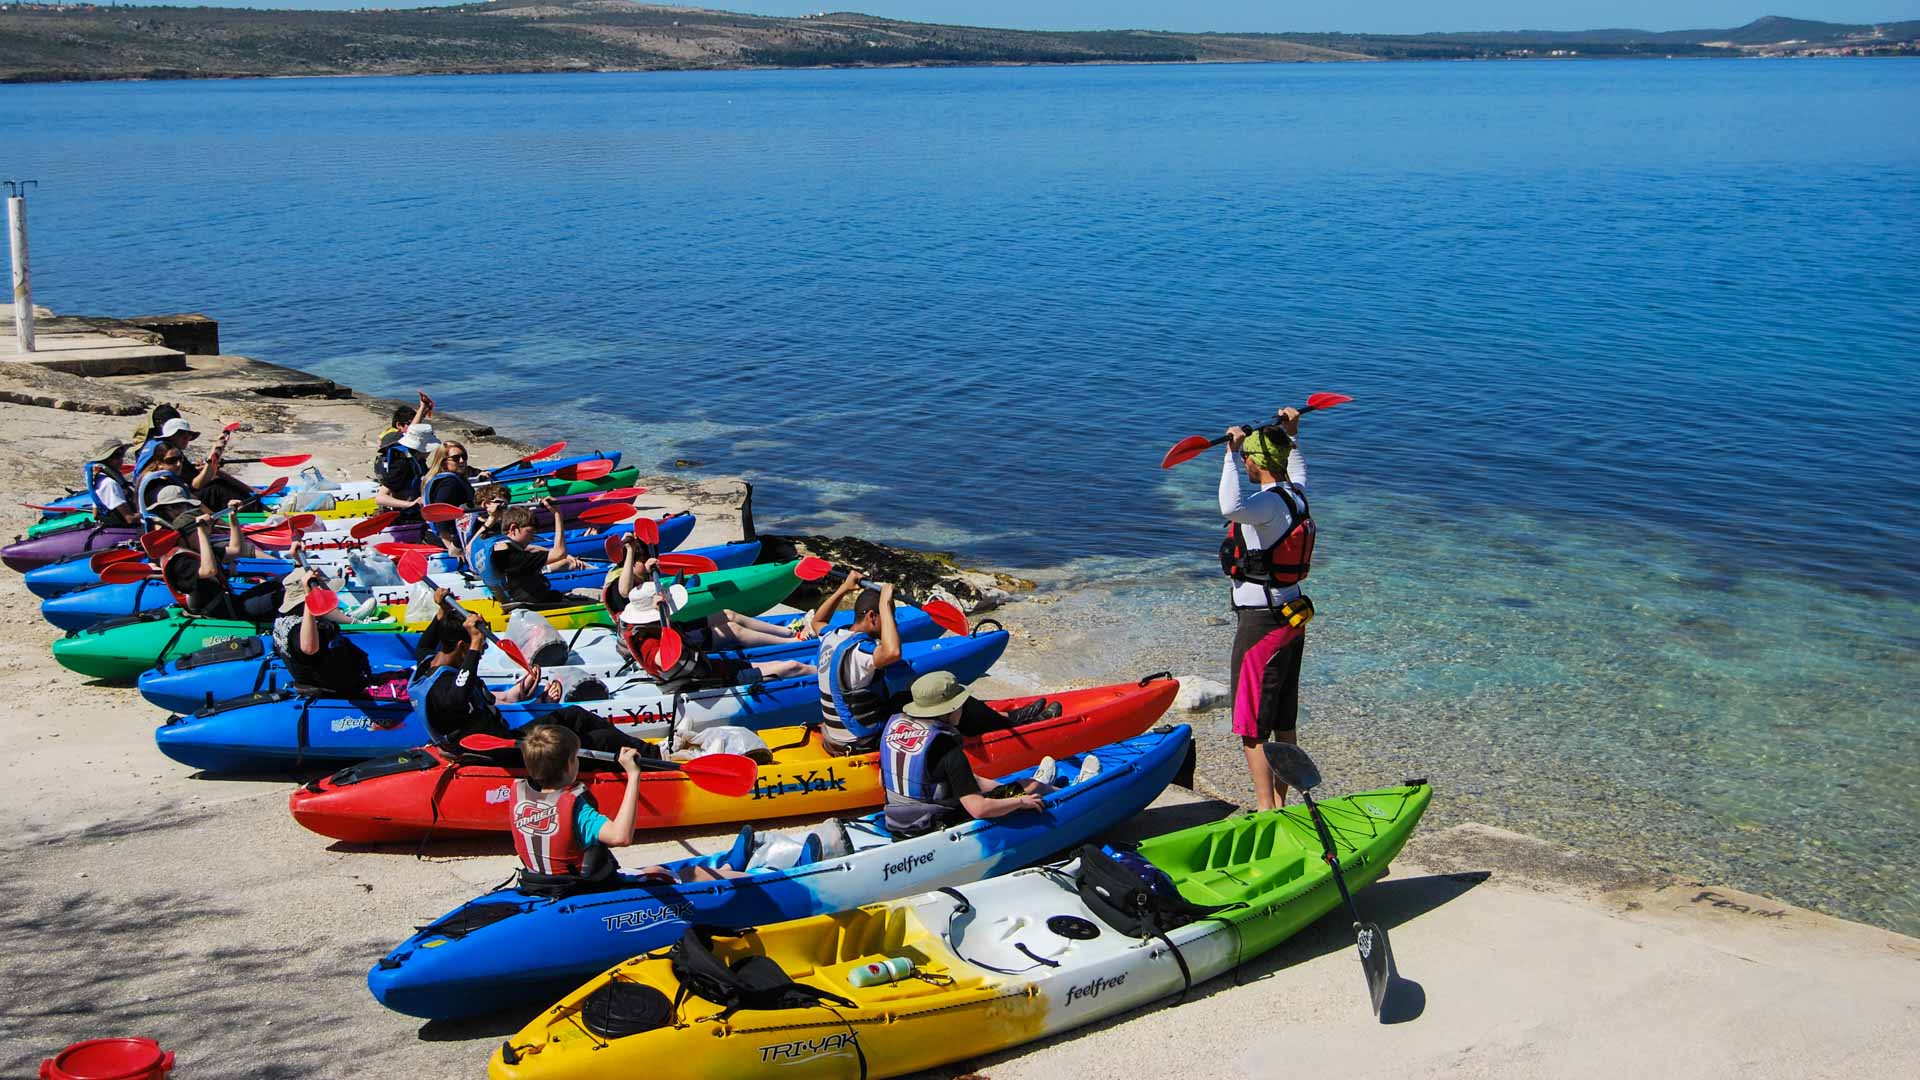 Adventure Guides Training in Croatia | Sea-kayaking-Novigrad-bay | Raftrek Adventure Travel Croatia